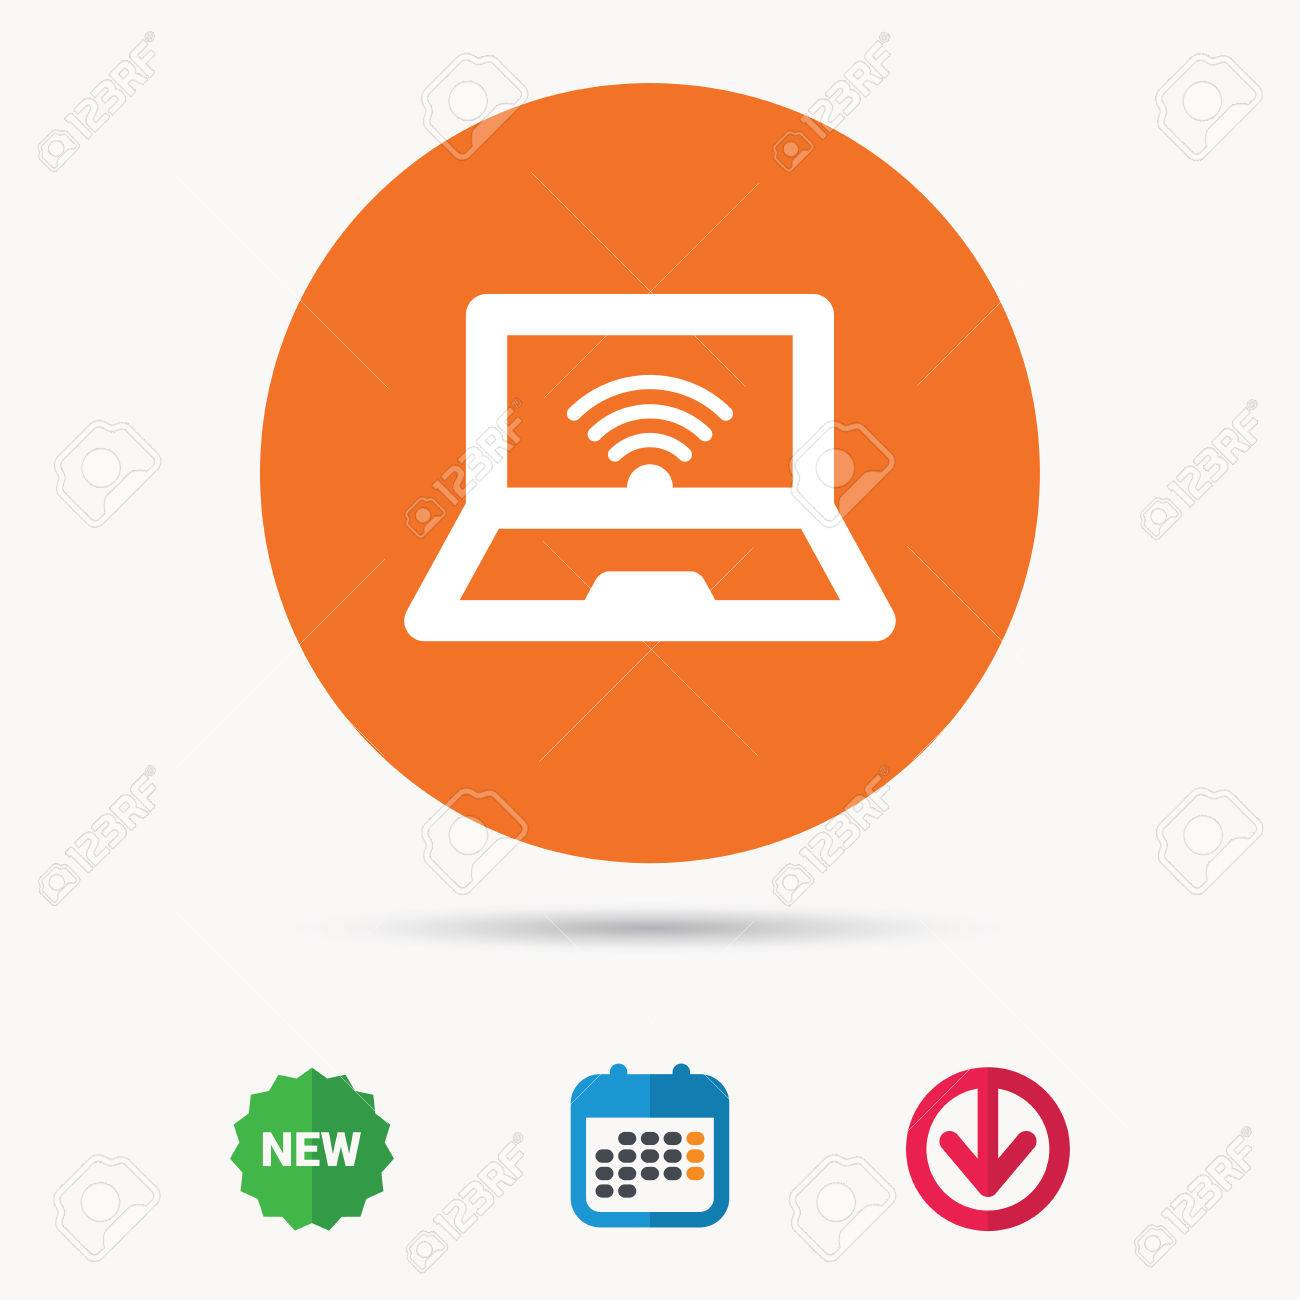 Computer icons download calendar icon png download 874*980.